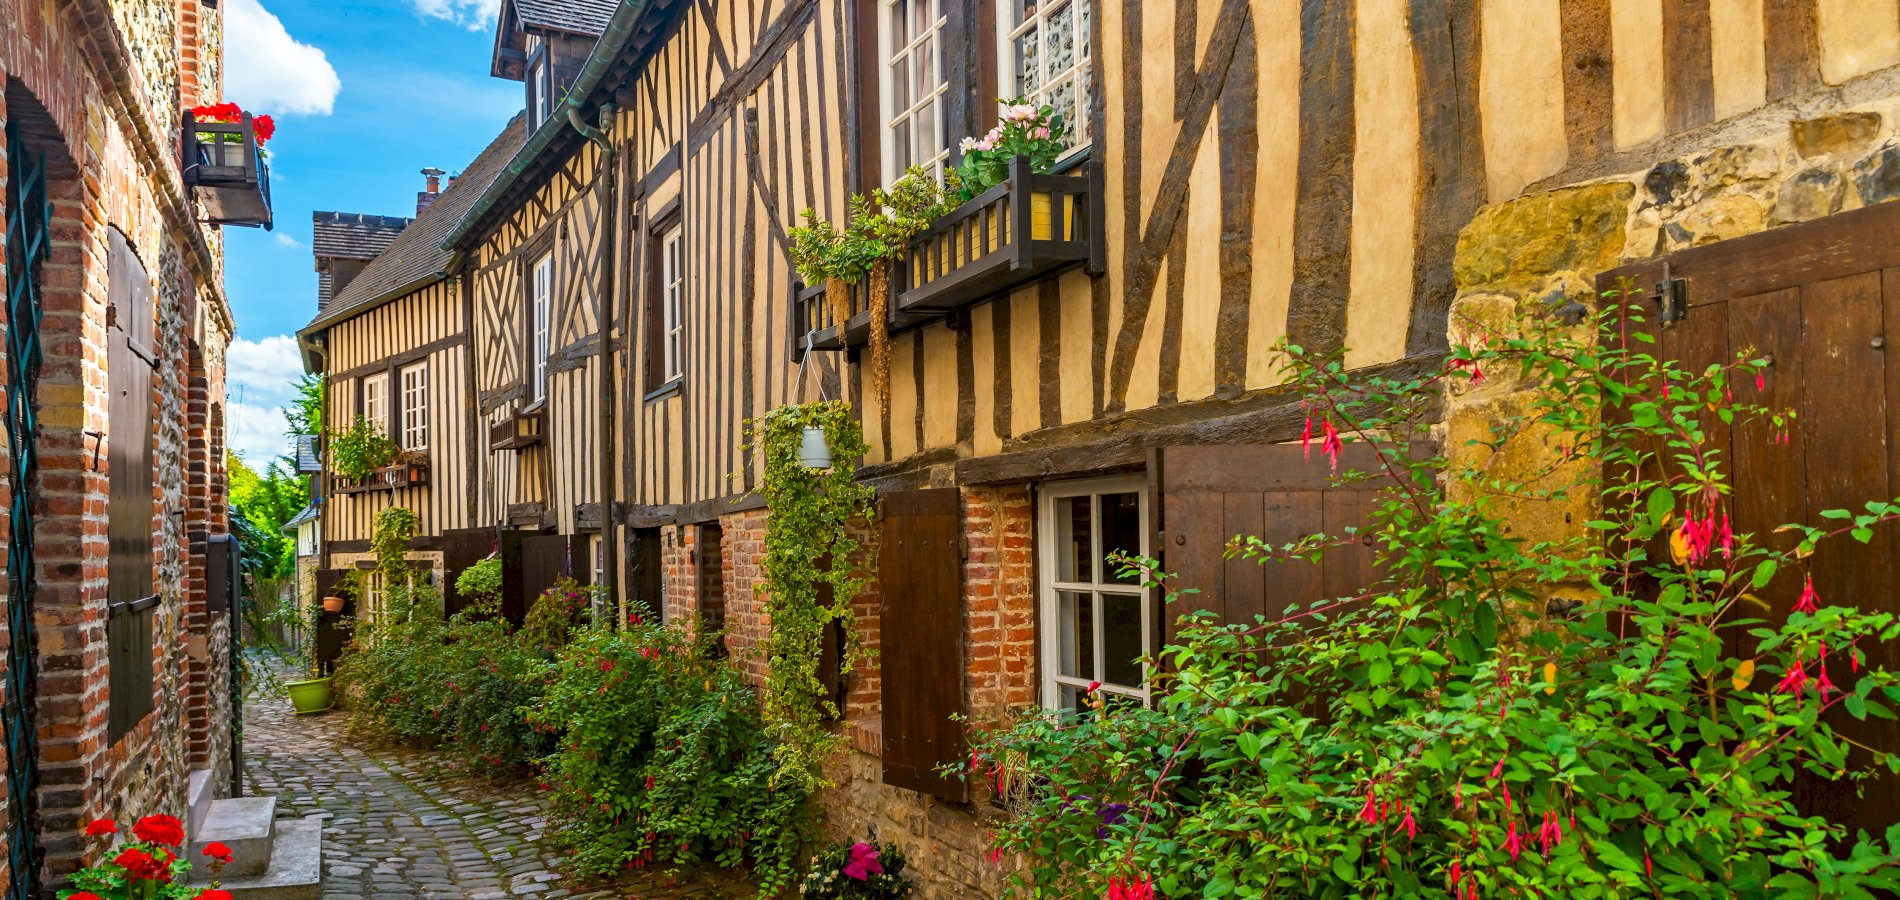 Ophorus Tours - Honfleur, Beuvron en Auge Village & Calvados Tasting Shared Full Day Trip From Bayeux